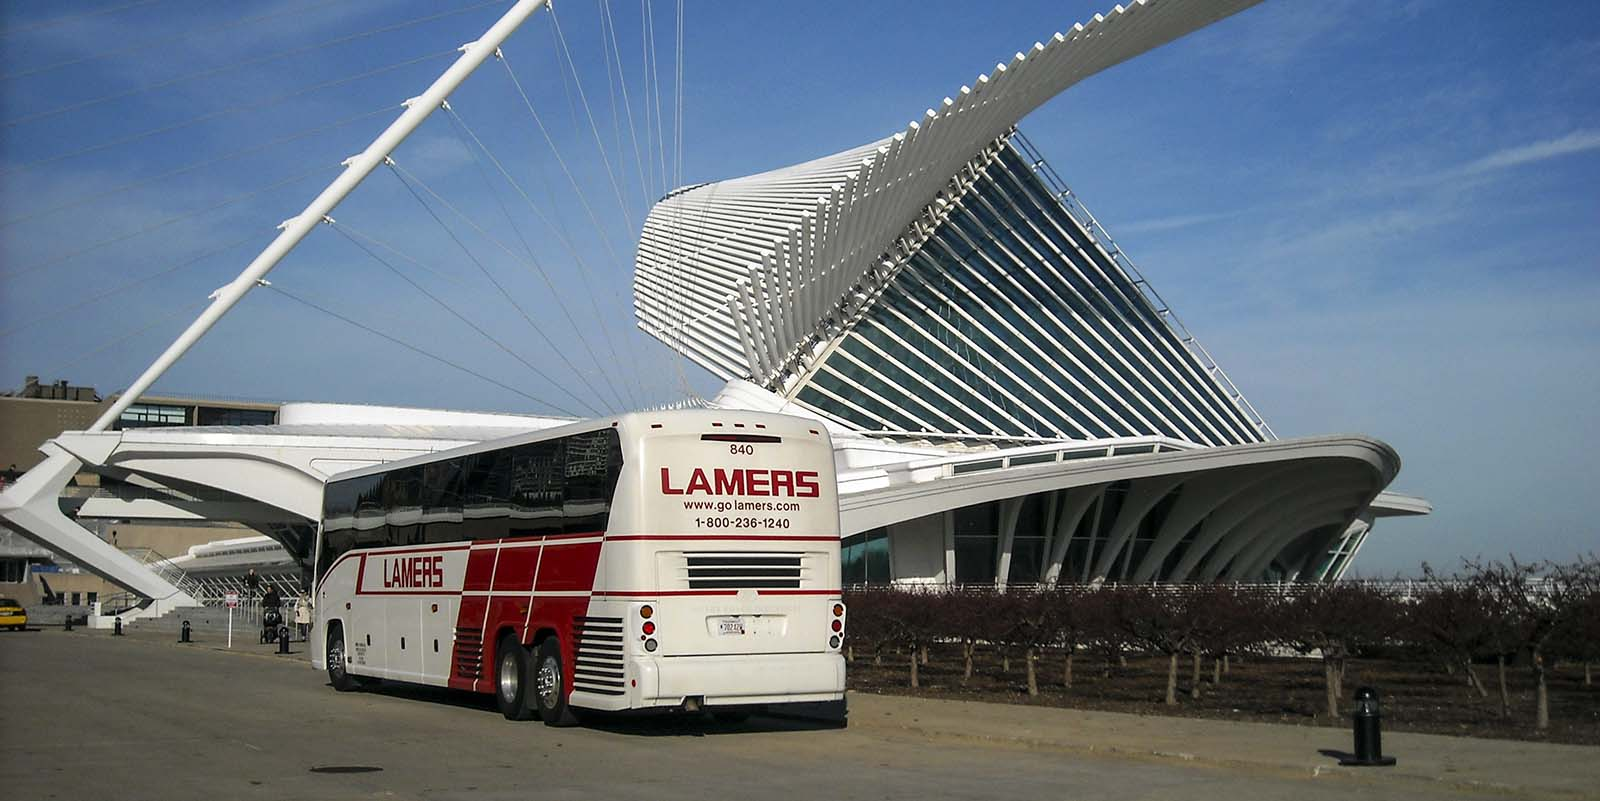 Lamers Bus Lines, Inc. motor coach in front of Milwaukee art museum